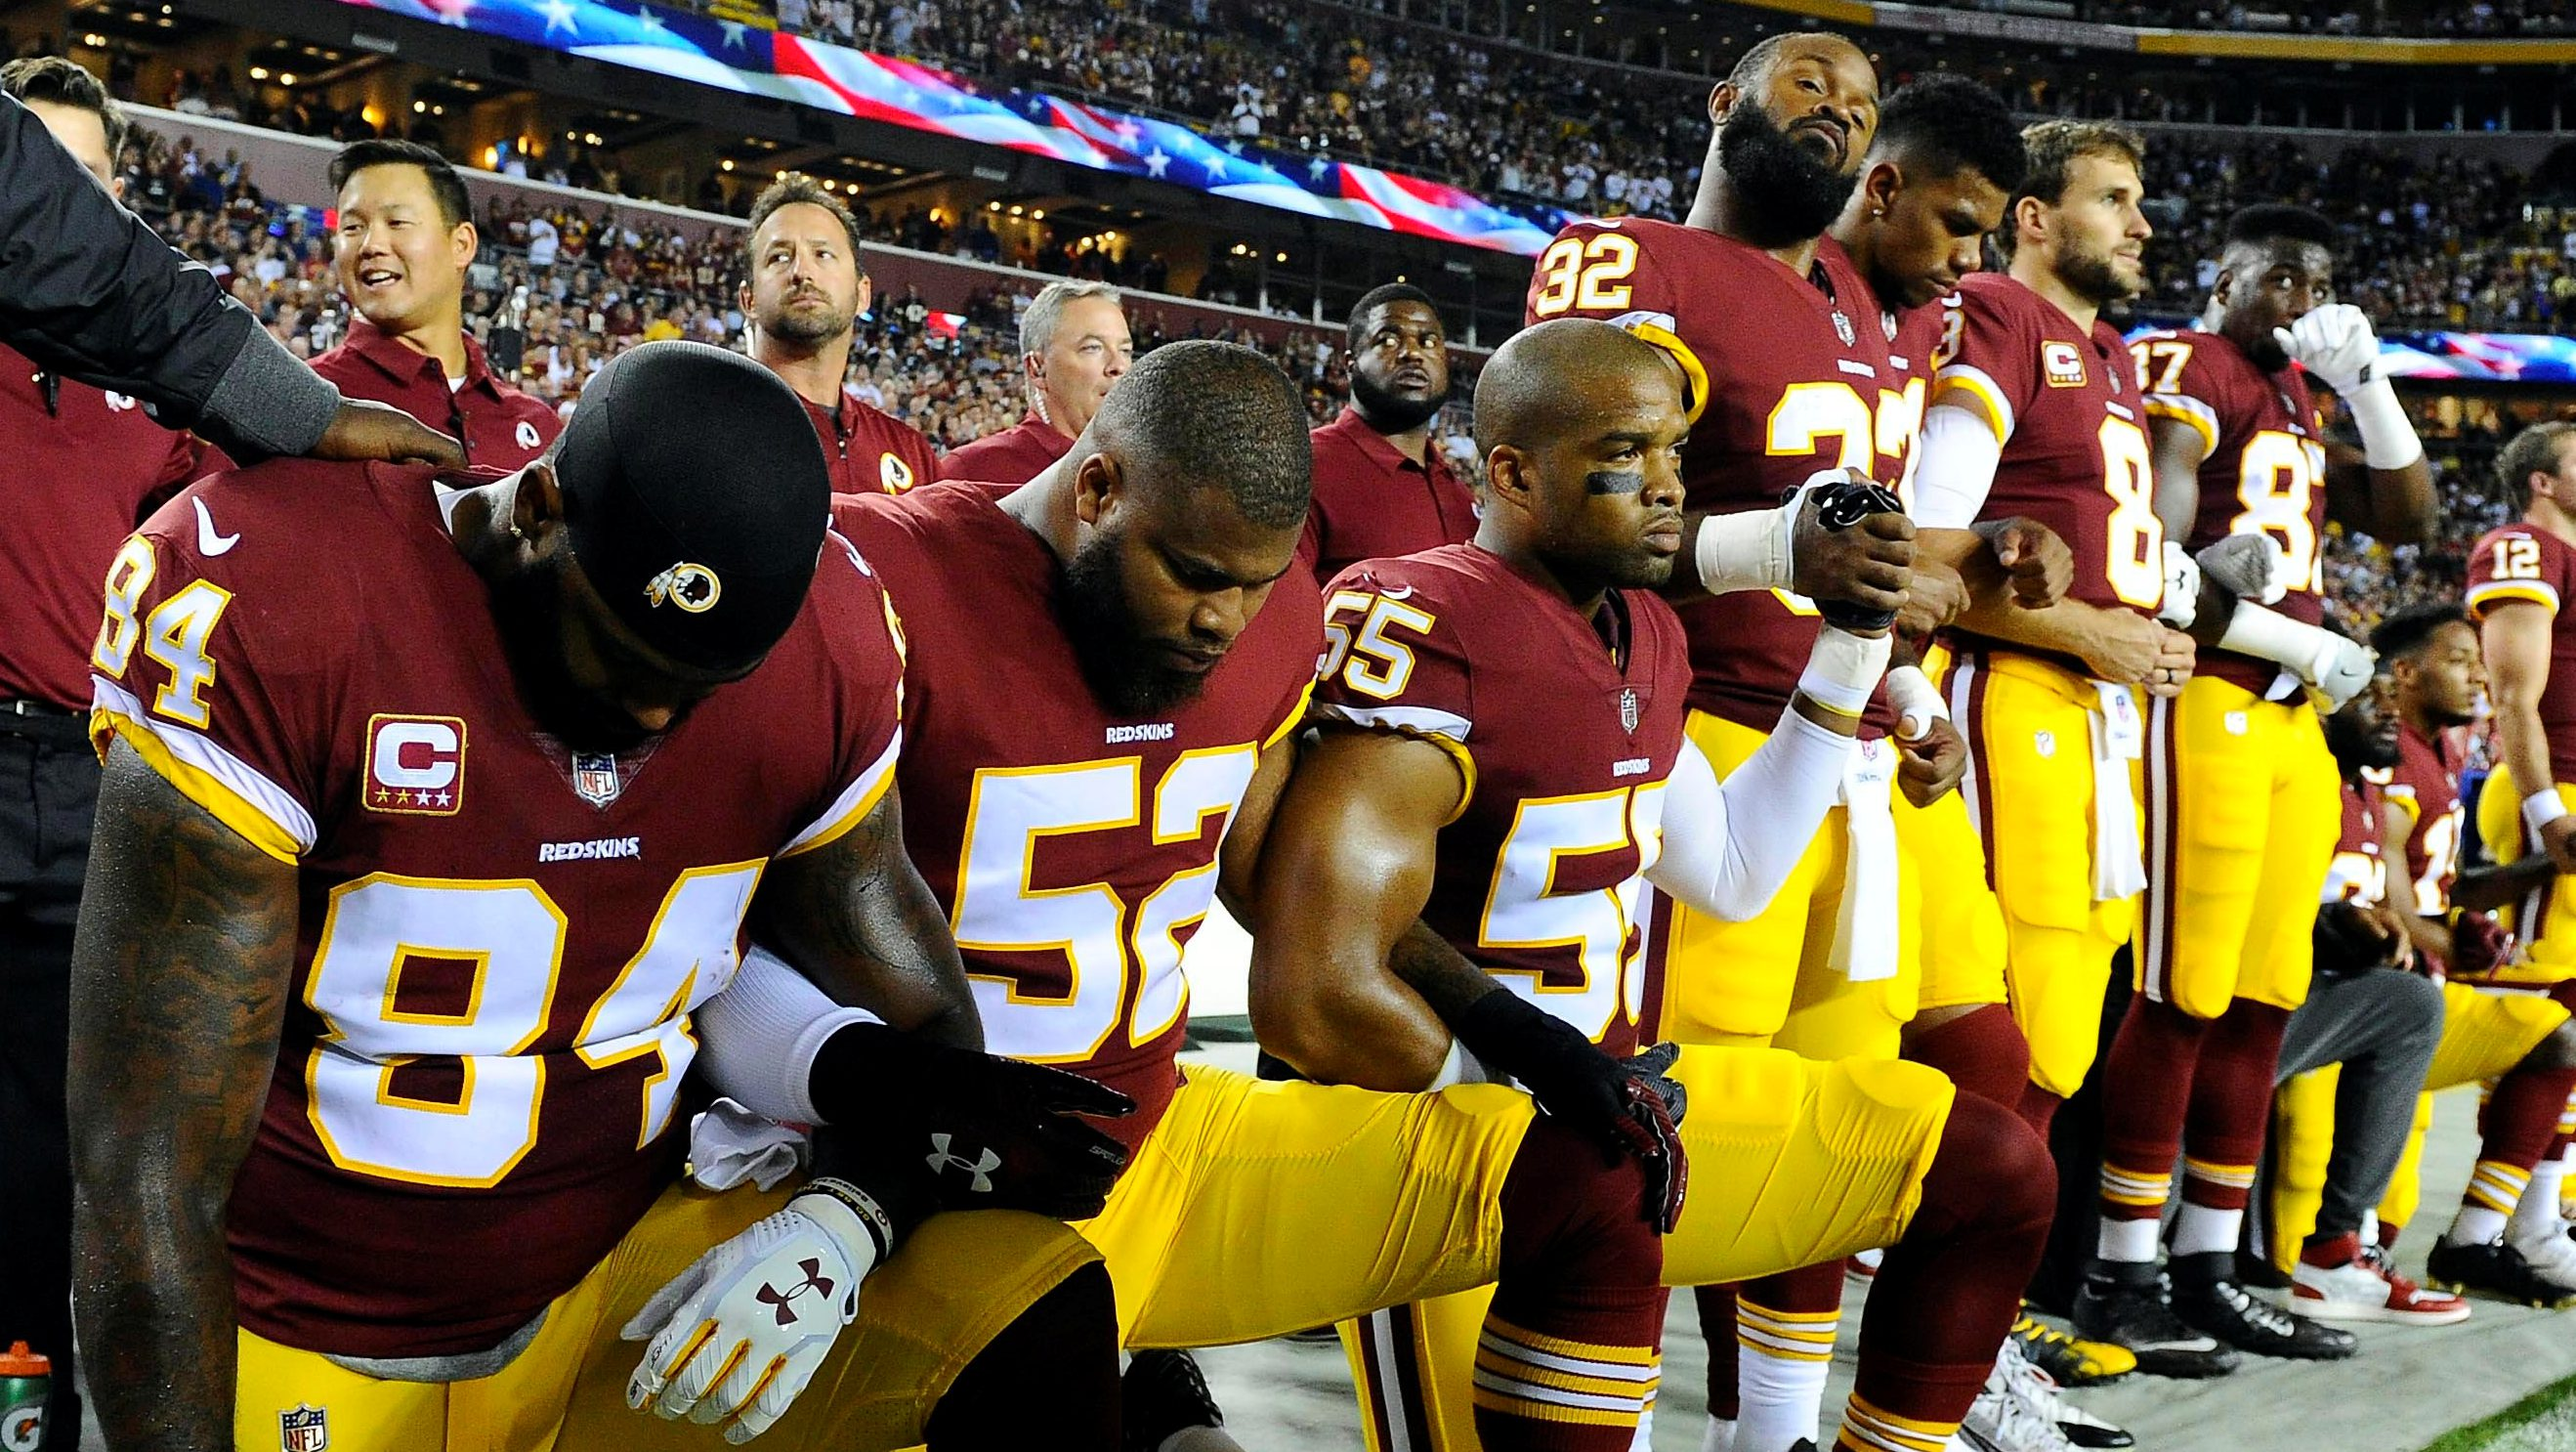 Sep 24, 2017; Landover, MD, USA; Washington Redskins tight end Niles Paul (84) and linebacker Ryan Anderson (52) and Washington Redskins linebacker Chris Carter (55) kneel with teammates during the playing of the national anthem before the game between the Washington Redskins and the Oakland Raiders at FedEx Field. Mandatory Credit: Brad Mills-USA TODAY Sports     TPX IMAGES OF THE DAY - 10305289